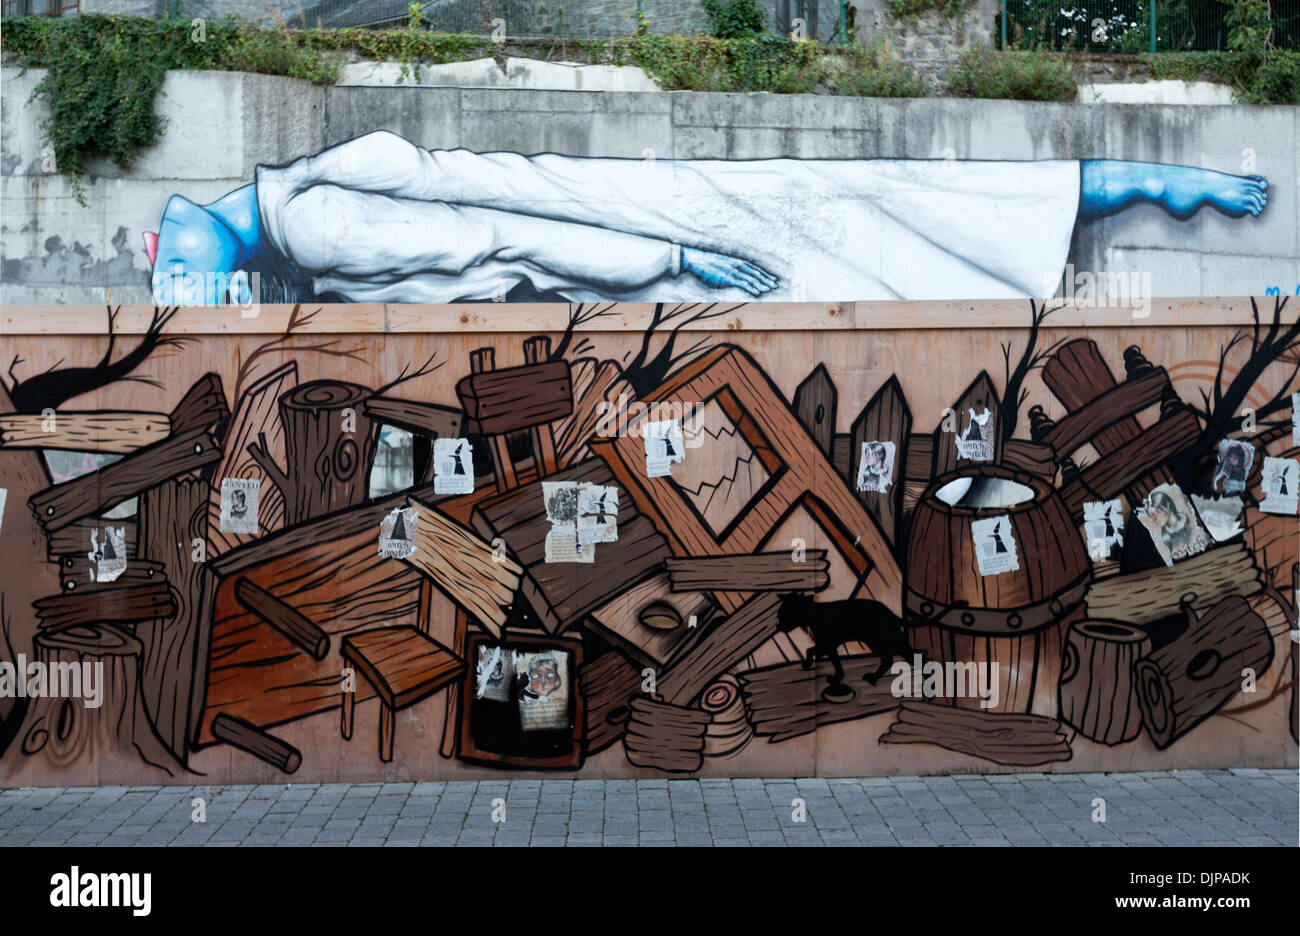 graffiti-in-kilkenny-by-mick-minogue-of-